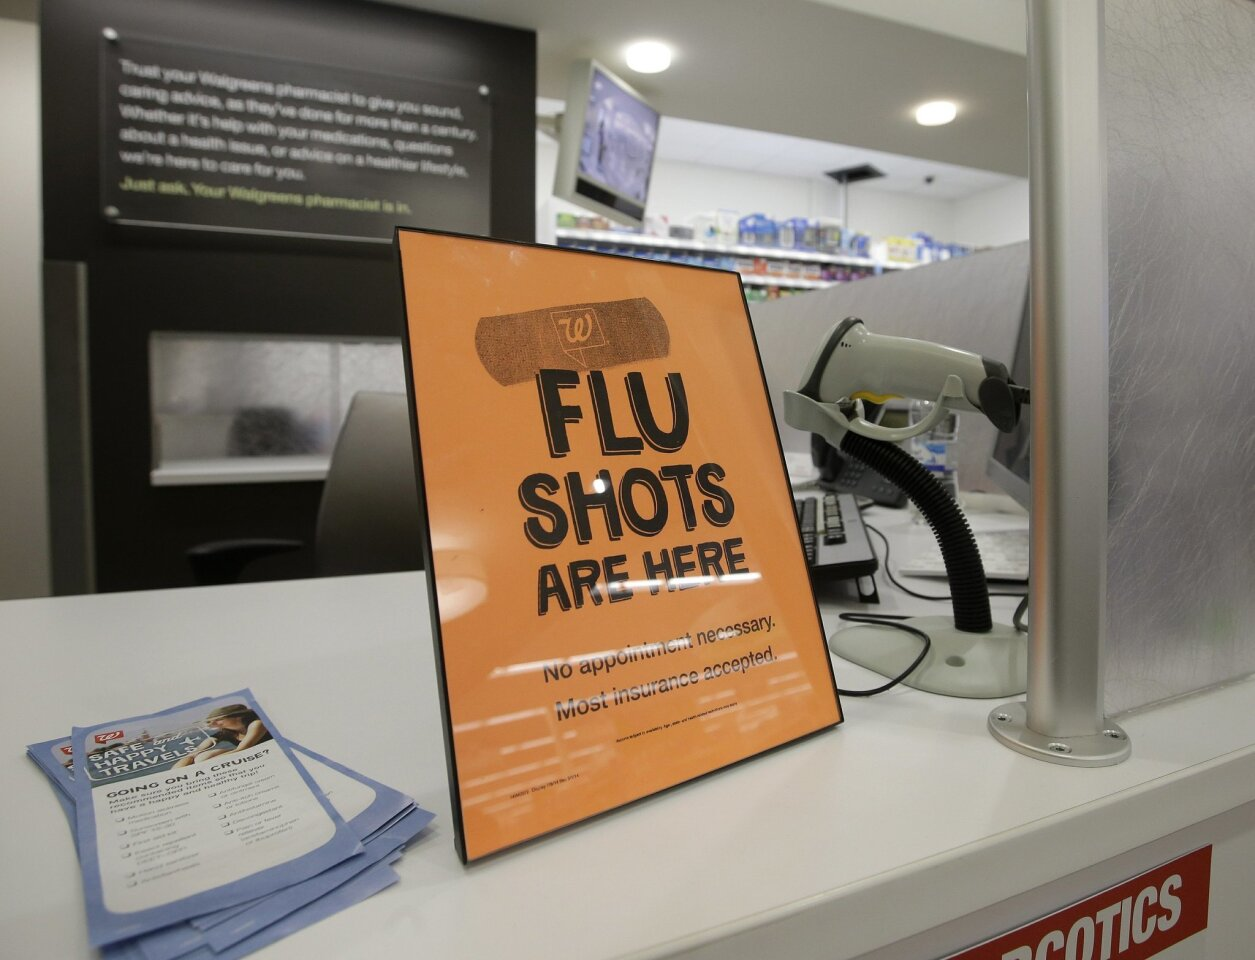 Flu cases in the county